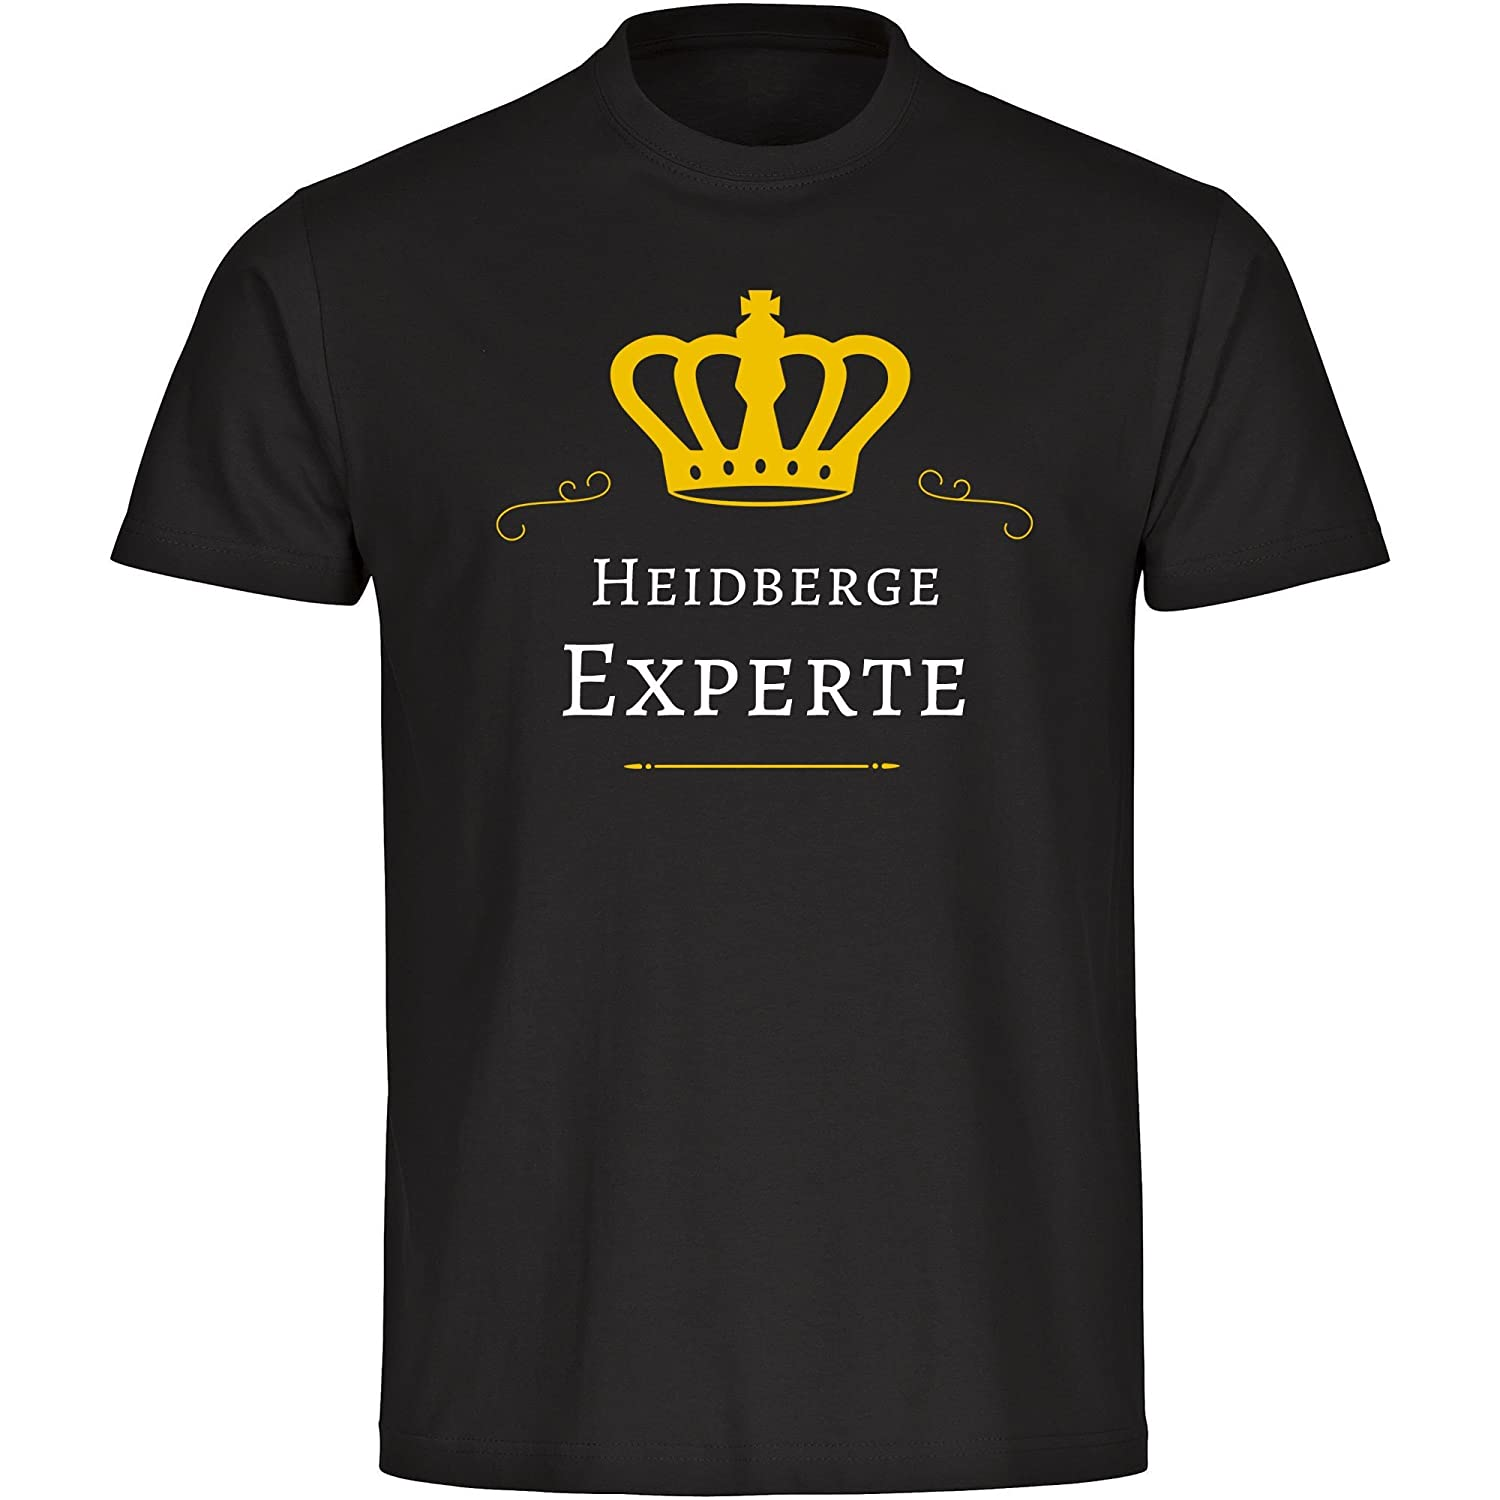 Heid Mountains Expert Men's Black T-Shirt Size S to 5XL